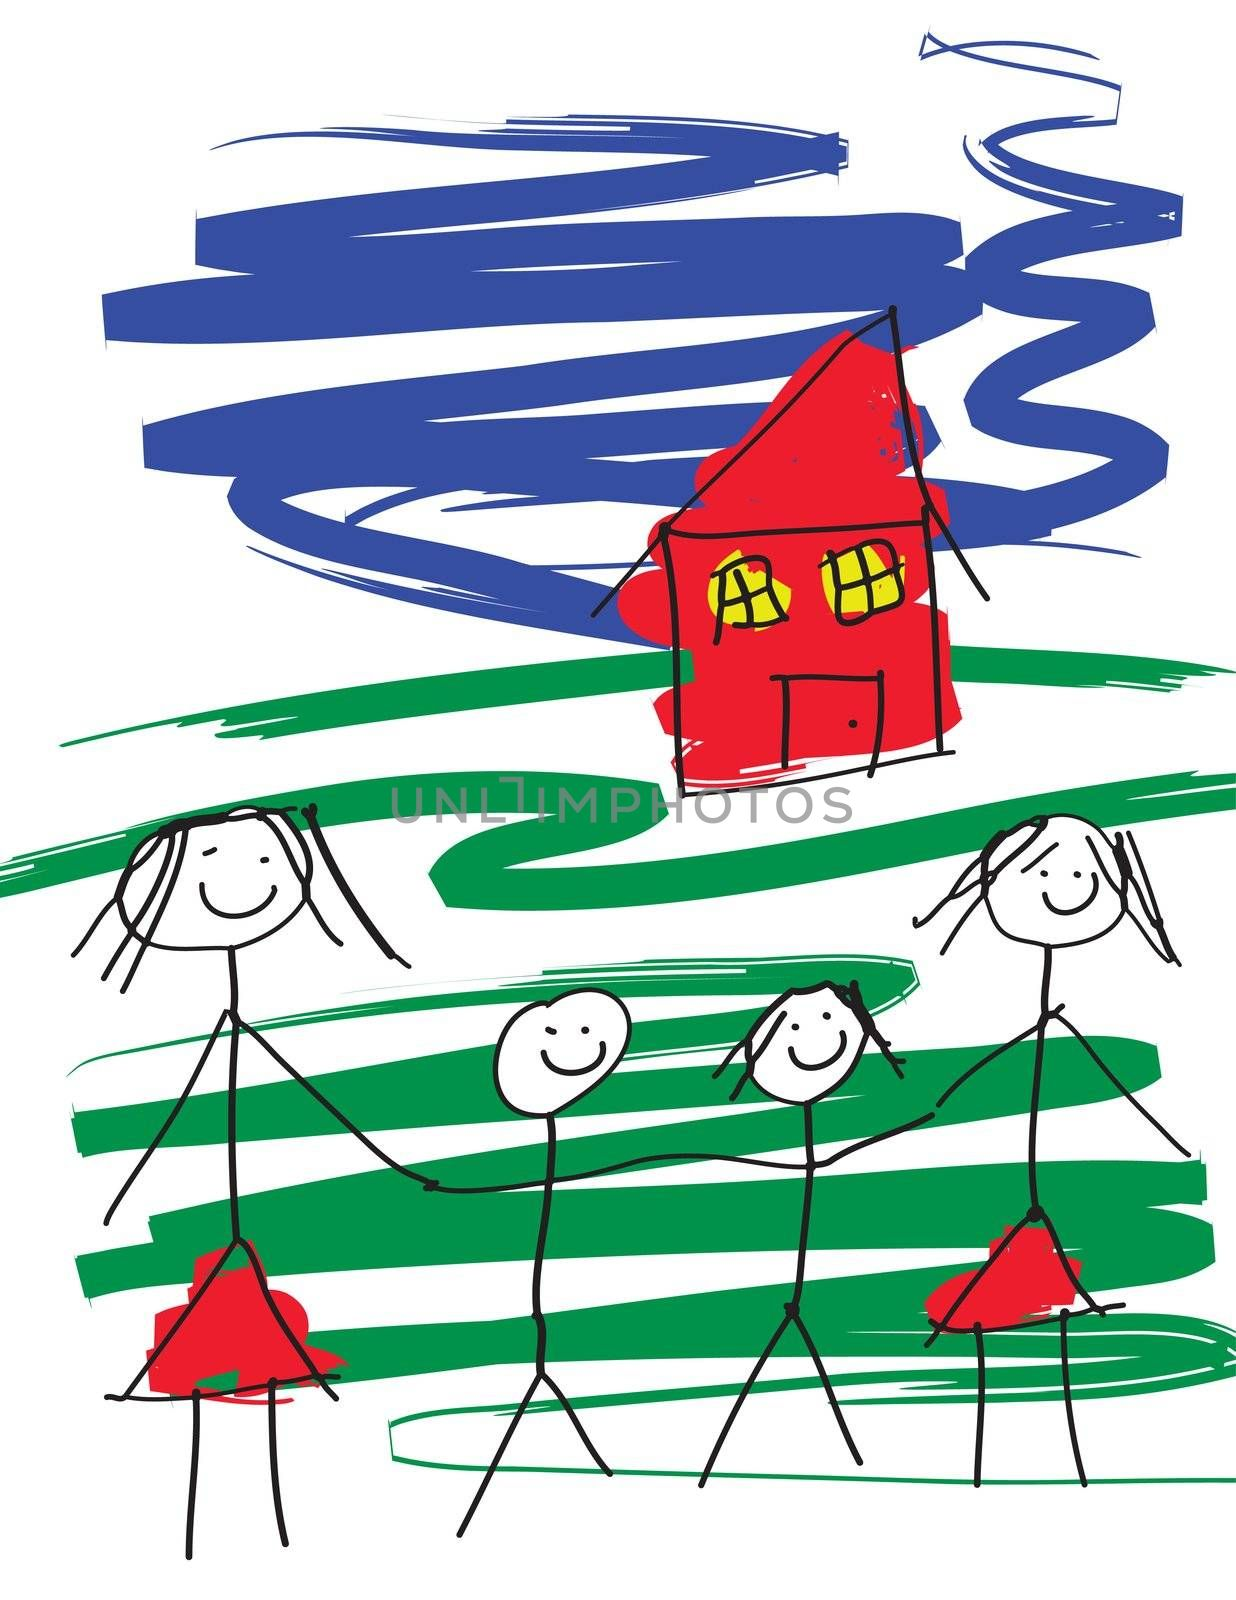 A child like drawing of a gay female pair of women with two children and a house.  The image is in eps vector format.